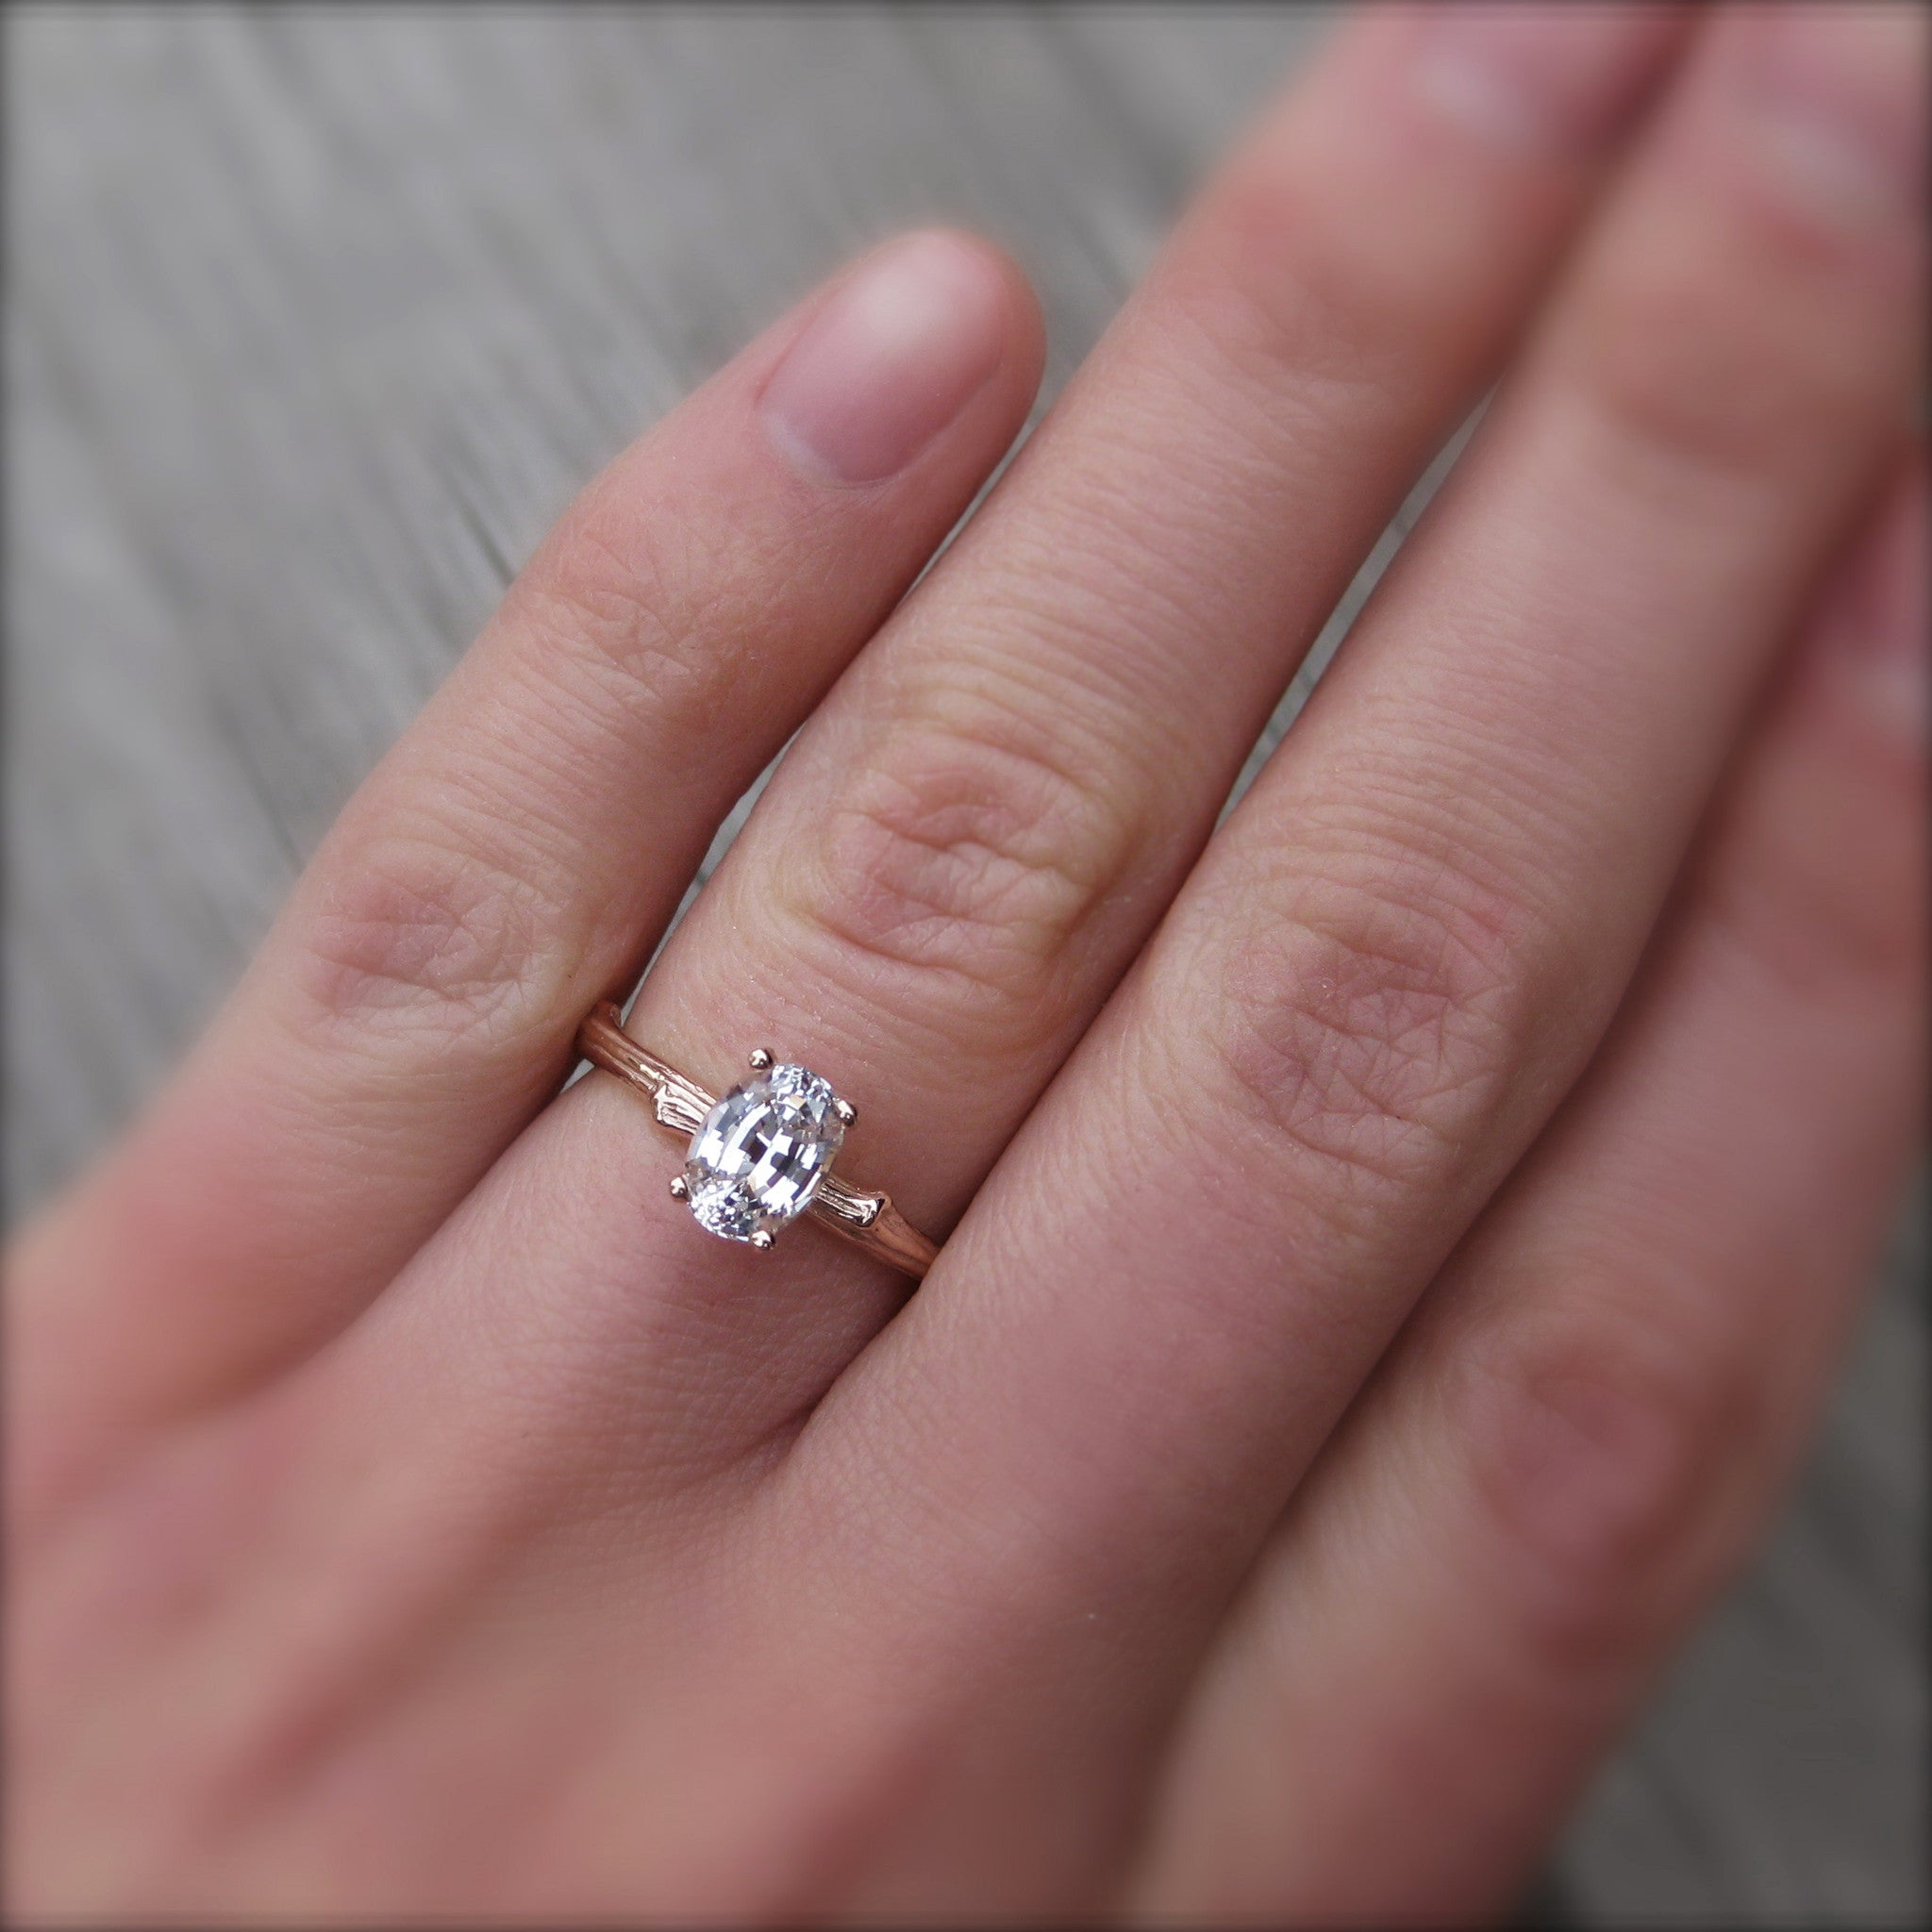 moissanite threembride halo oval rings ring or com athelred twig carat ct wedding engagement supernova